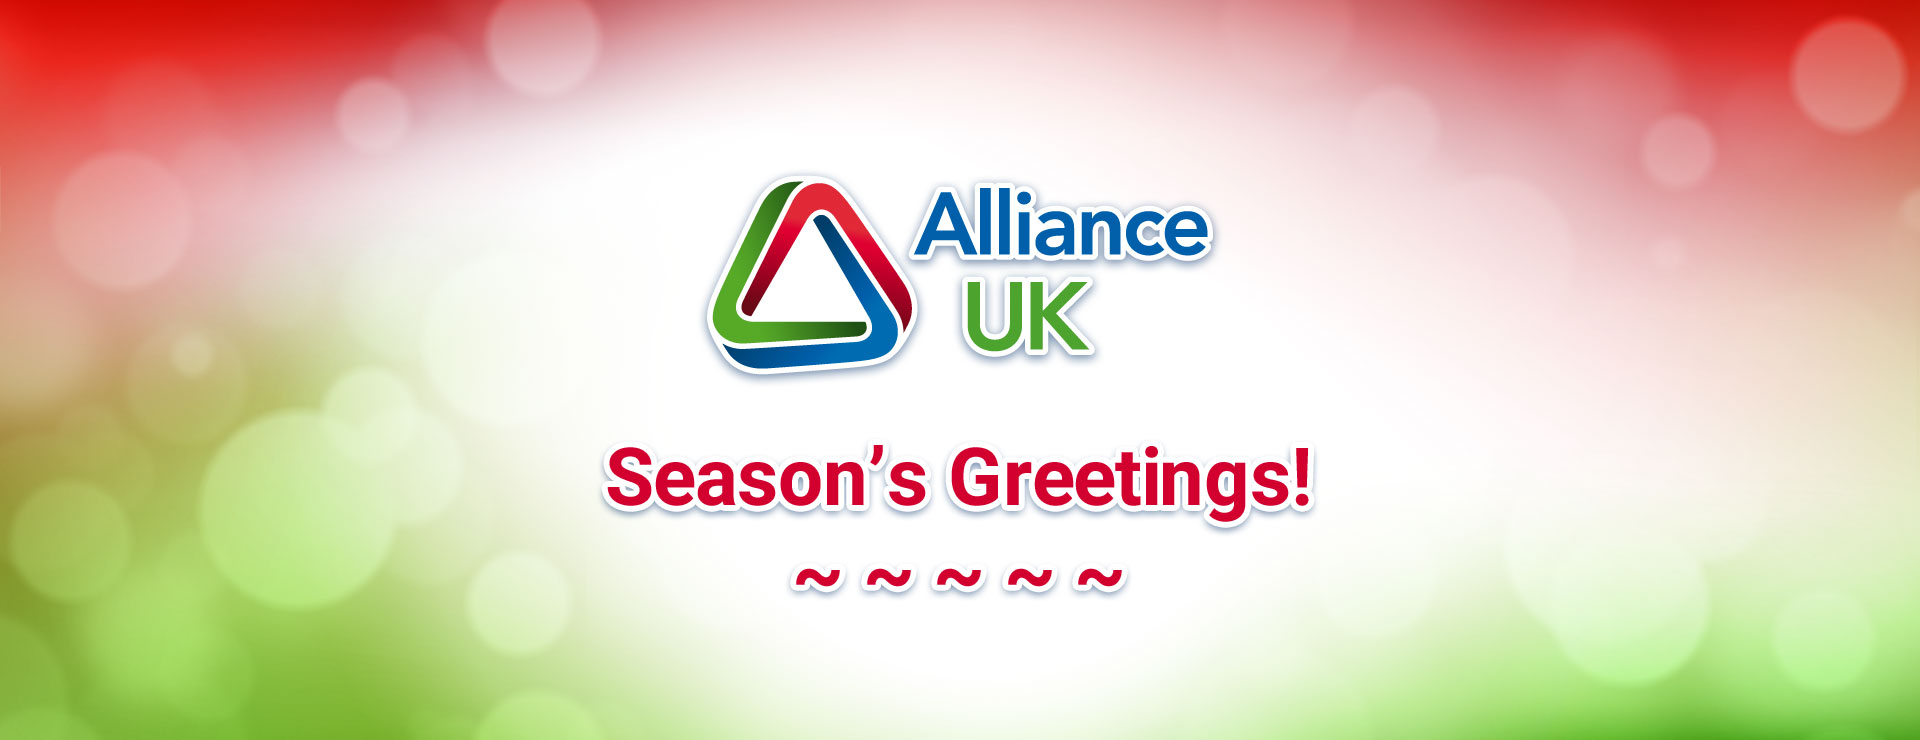 Alliance UK Christmas